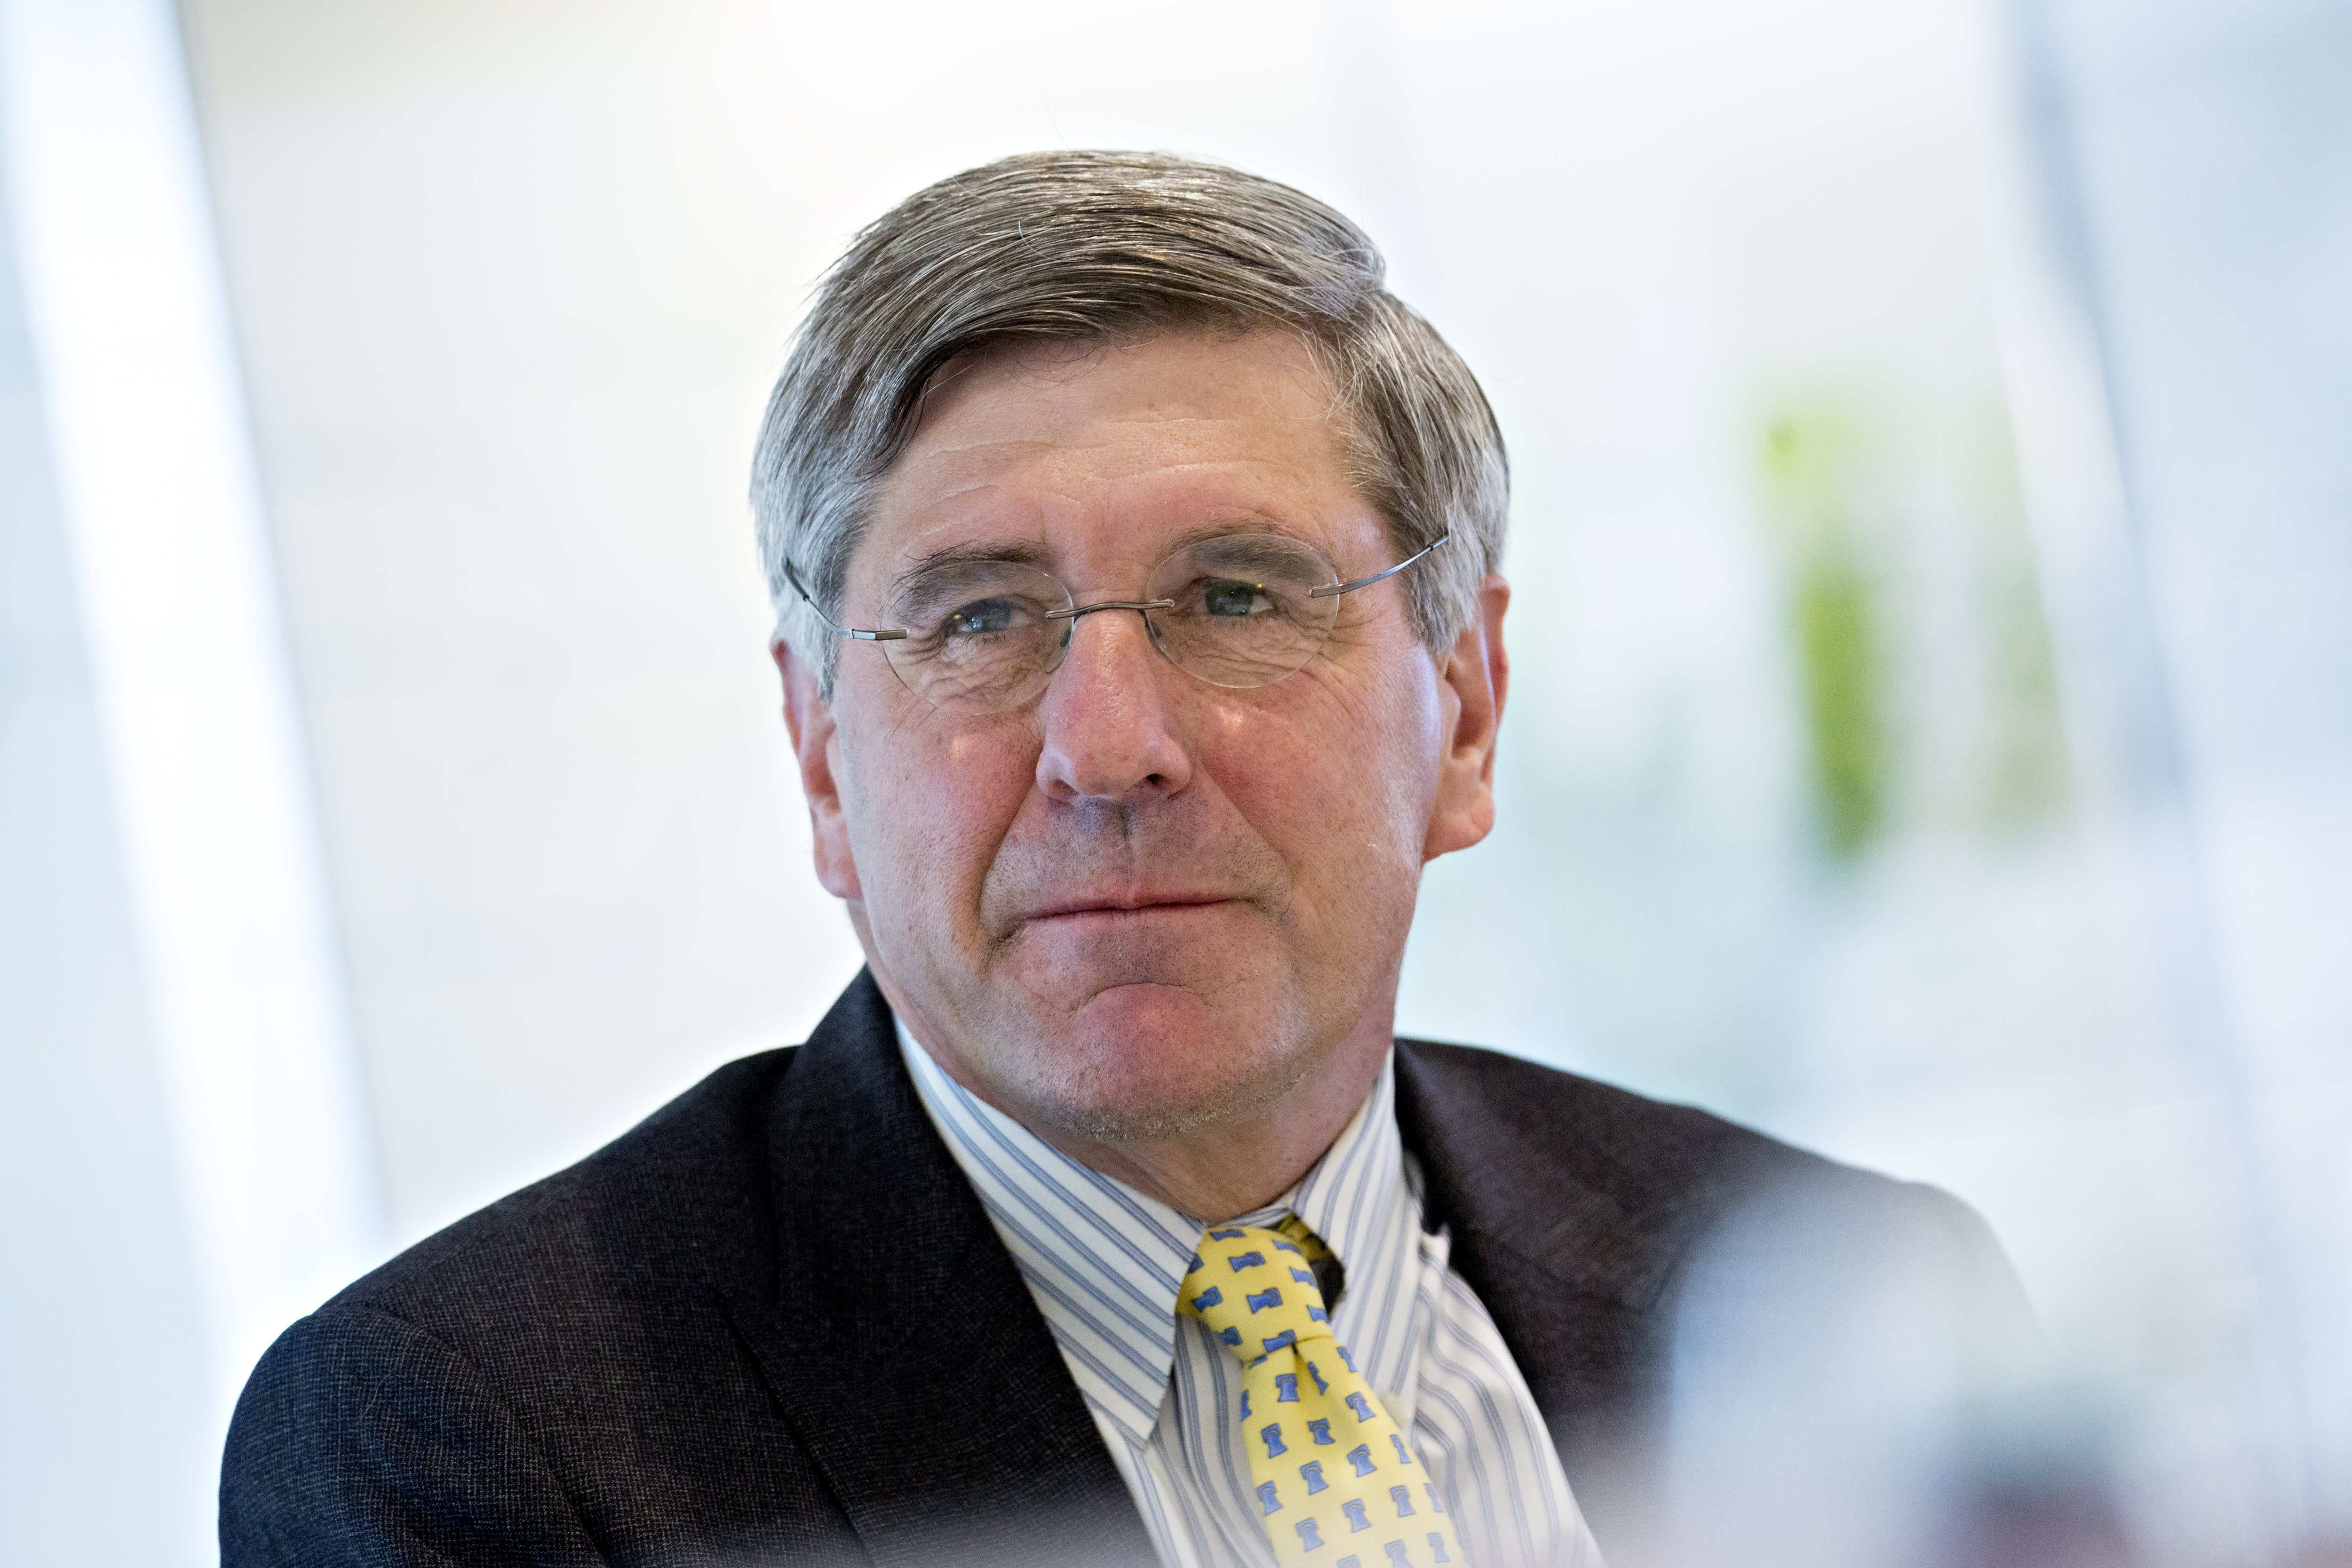 Trump's failed Fed pick Stephen Moore: If central bankers cut rates, it would be 'Moore's revenge'